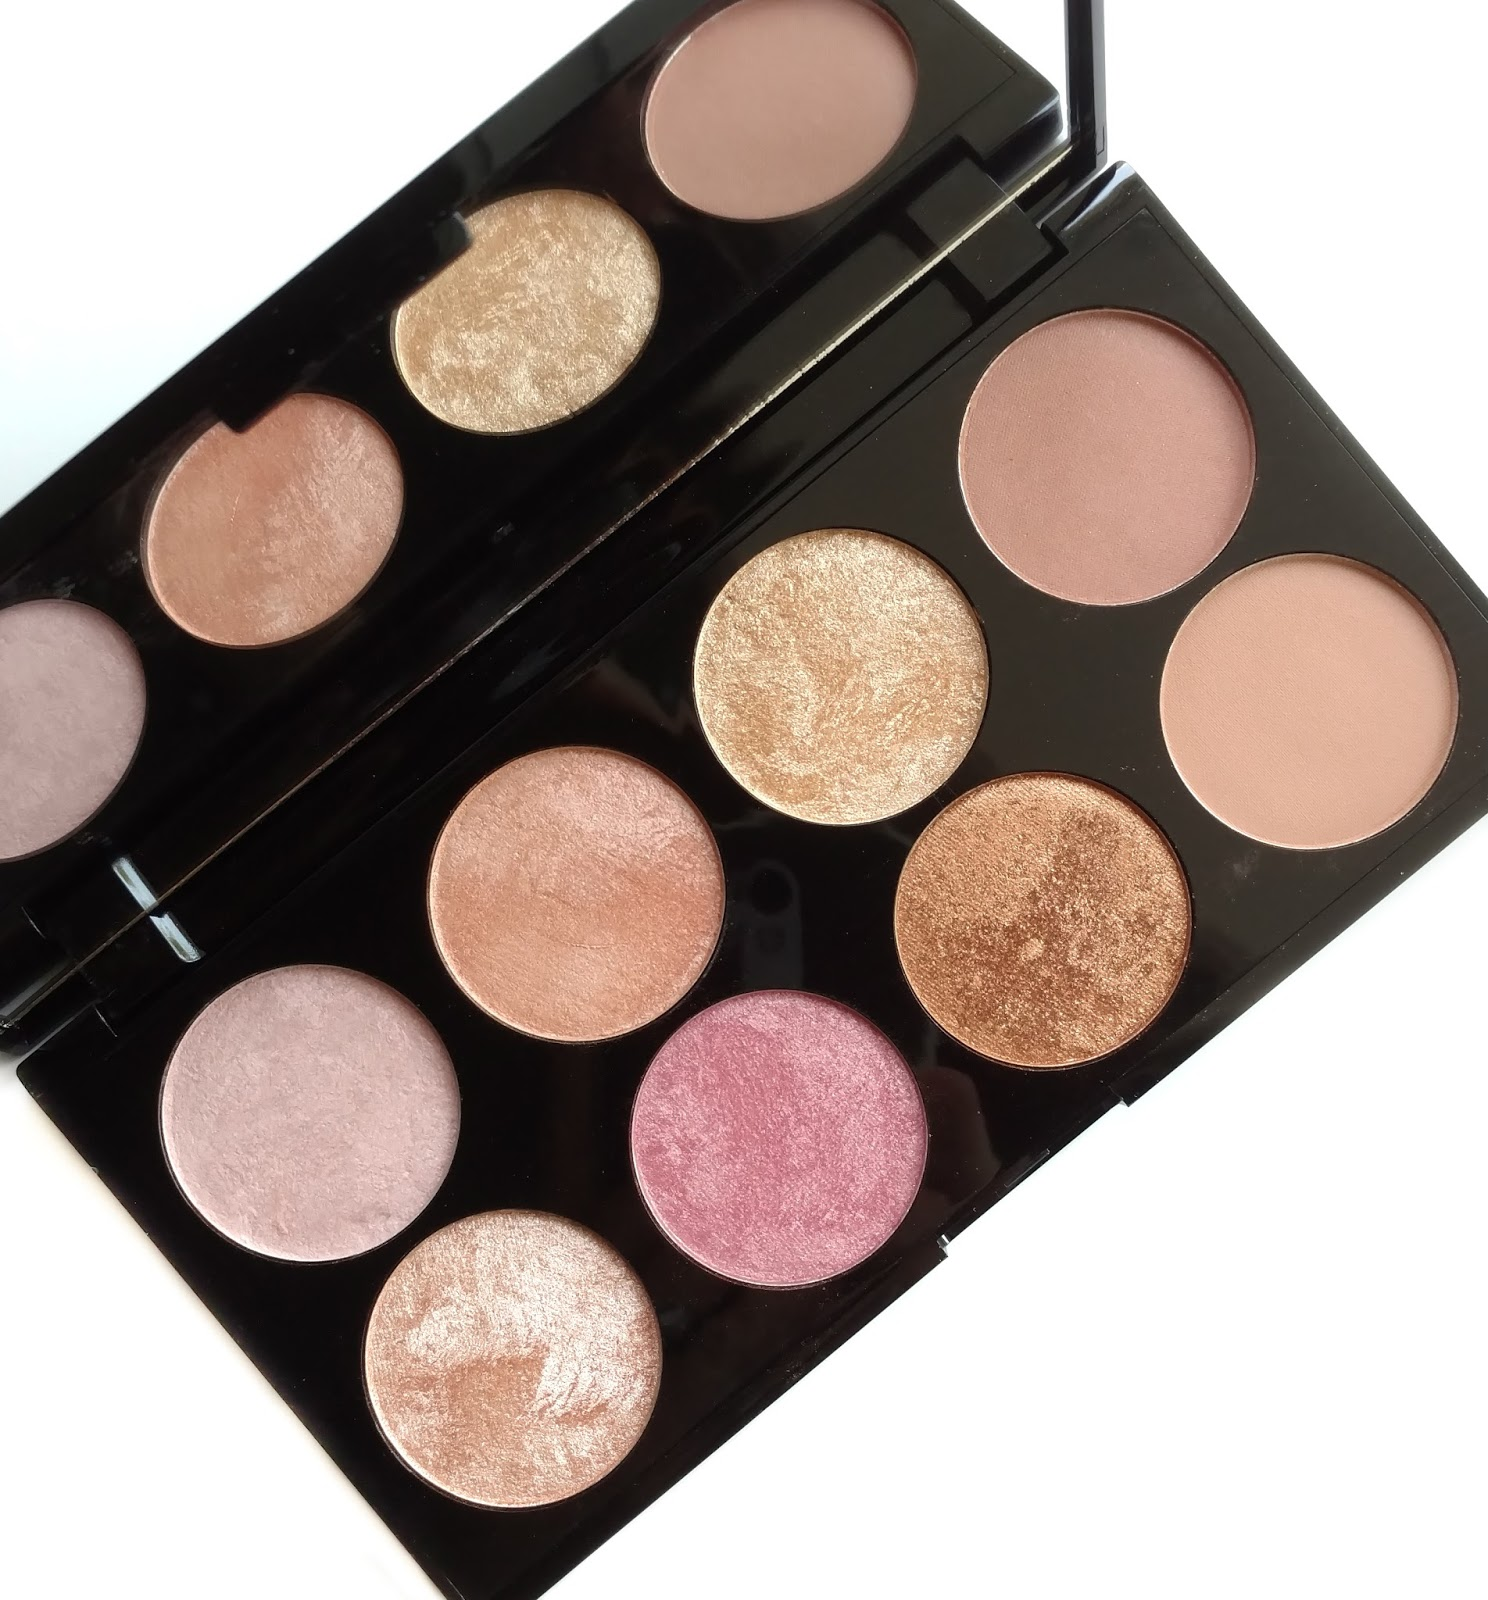 Your typical blush palette doesn't normally have enough variation of shades to be used on the eyes but this one gives you two matte transition/crease colors ...